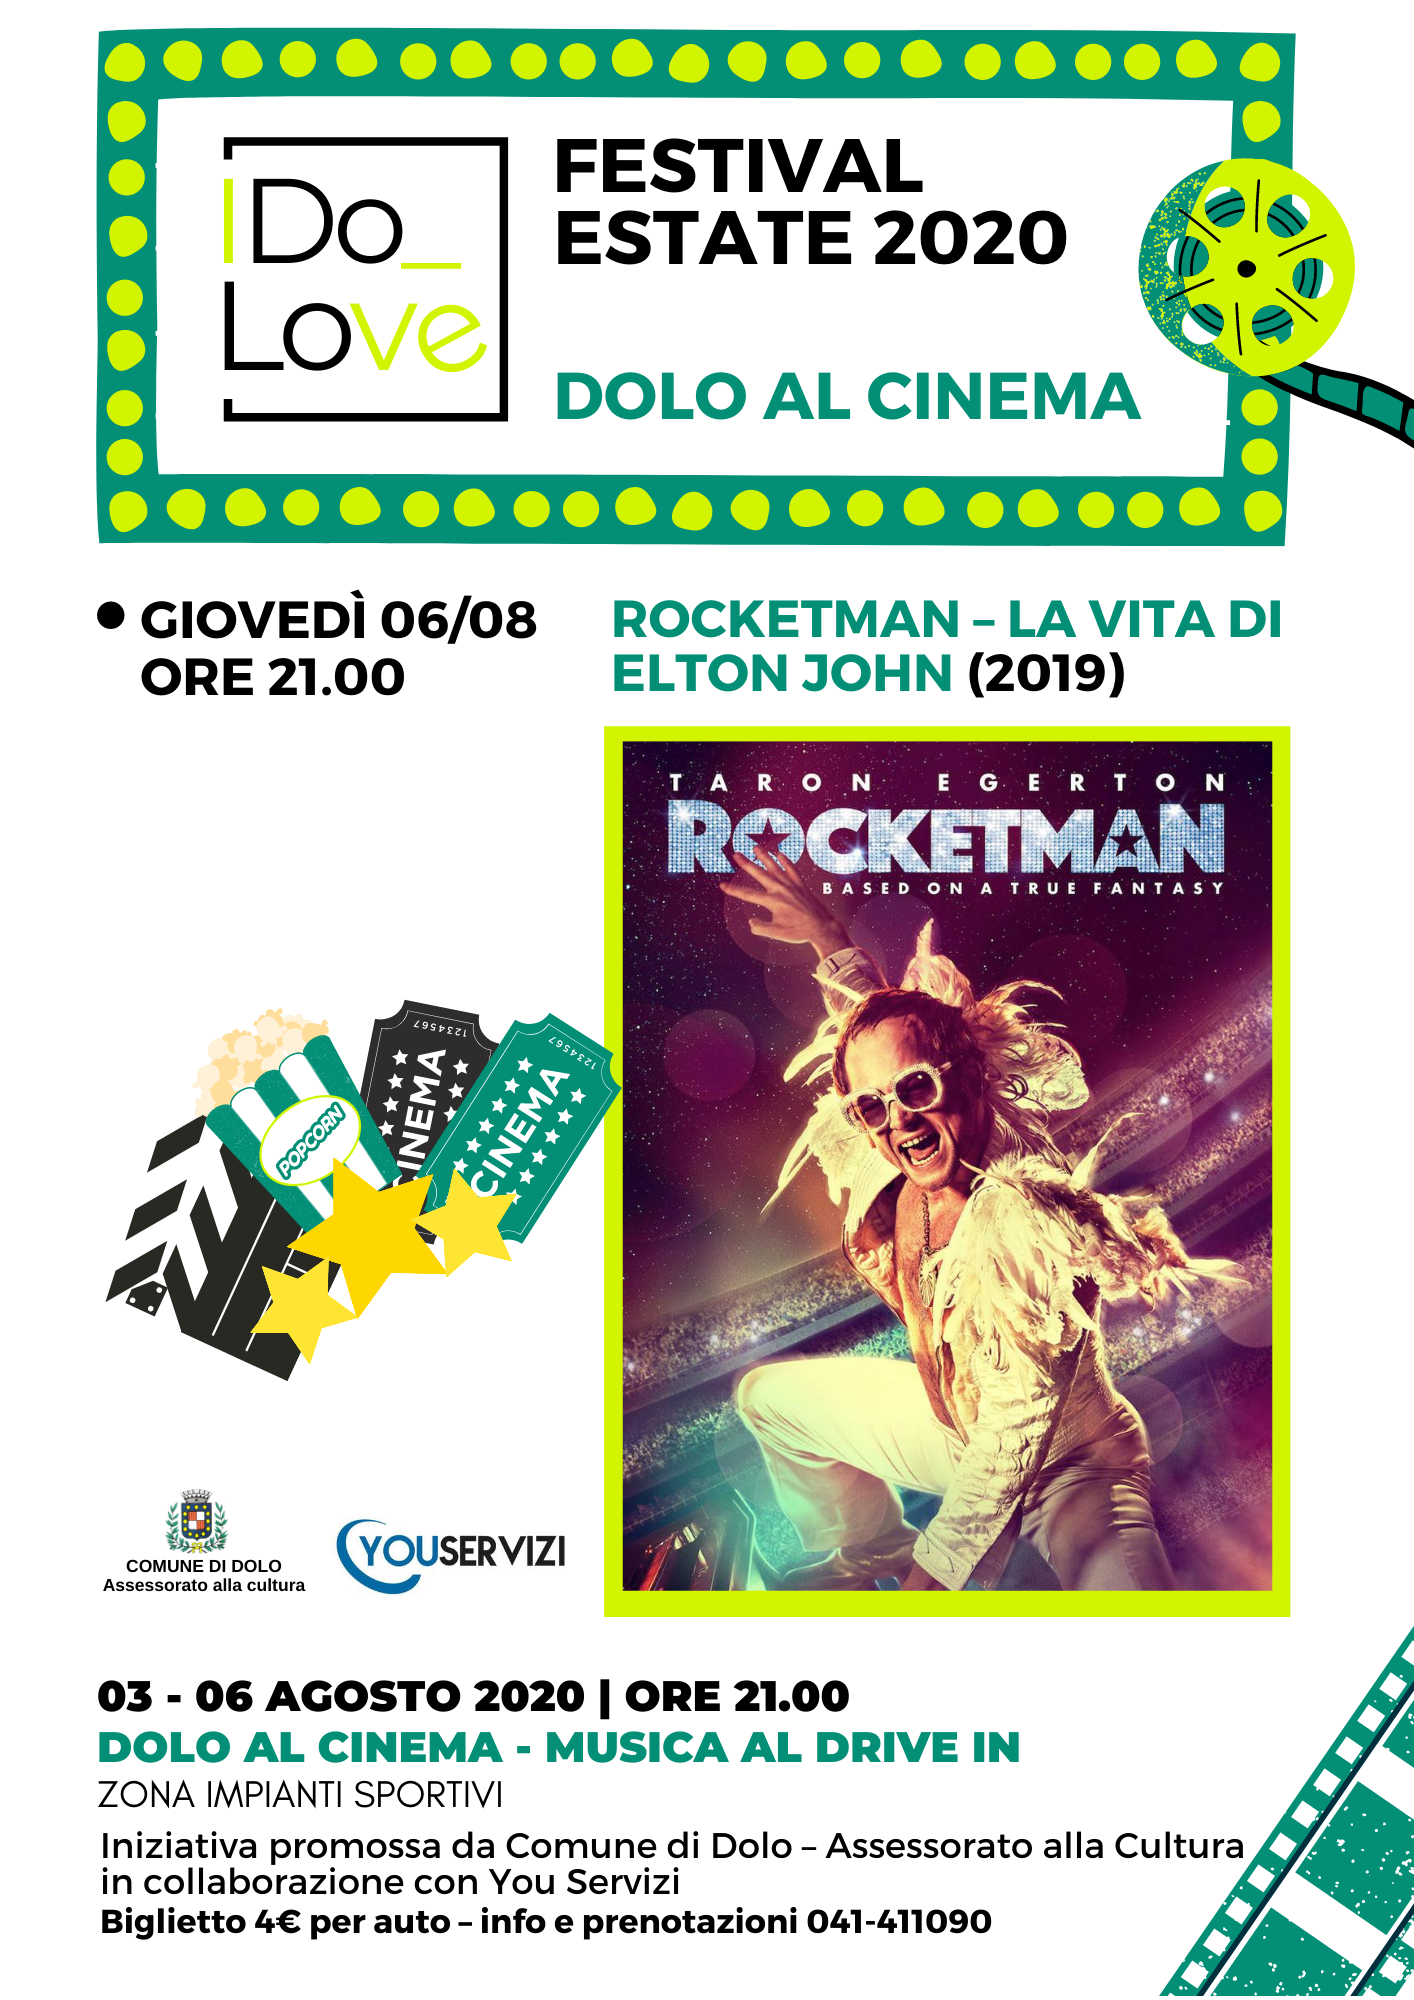 'DOLO AL CINEMA - MUSICA AL DRIVE IN'